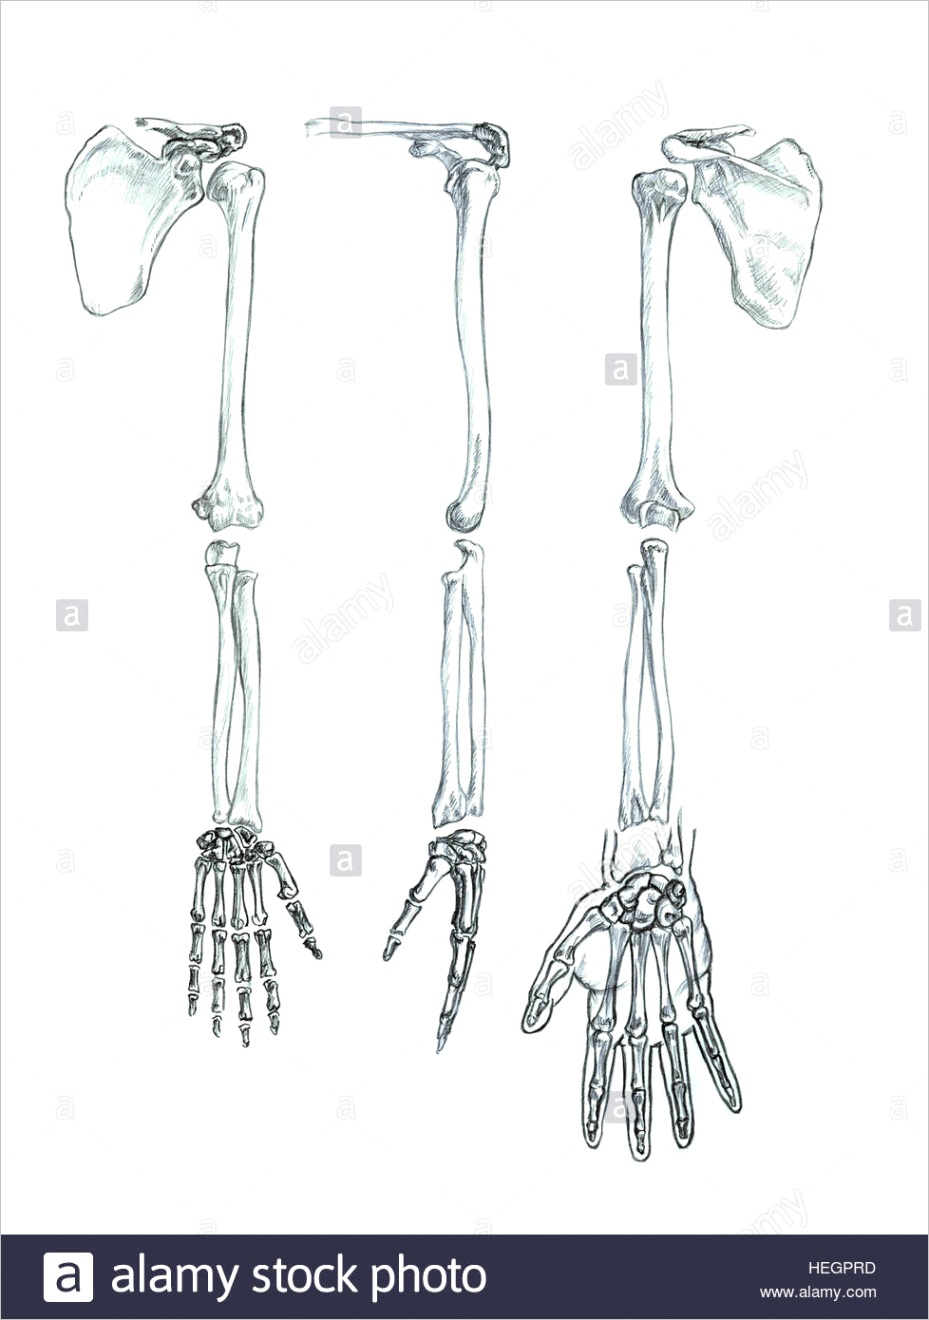 stock photo bones of the upper extremity hand drawn medical illustration drawing ml